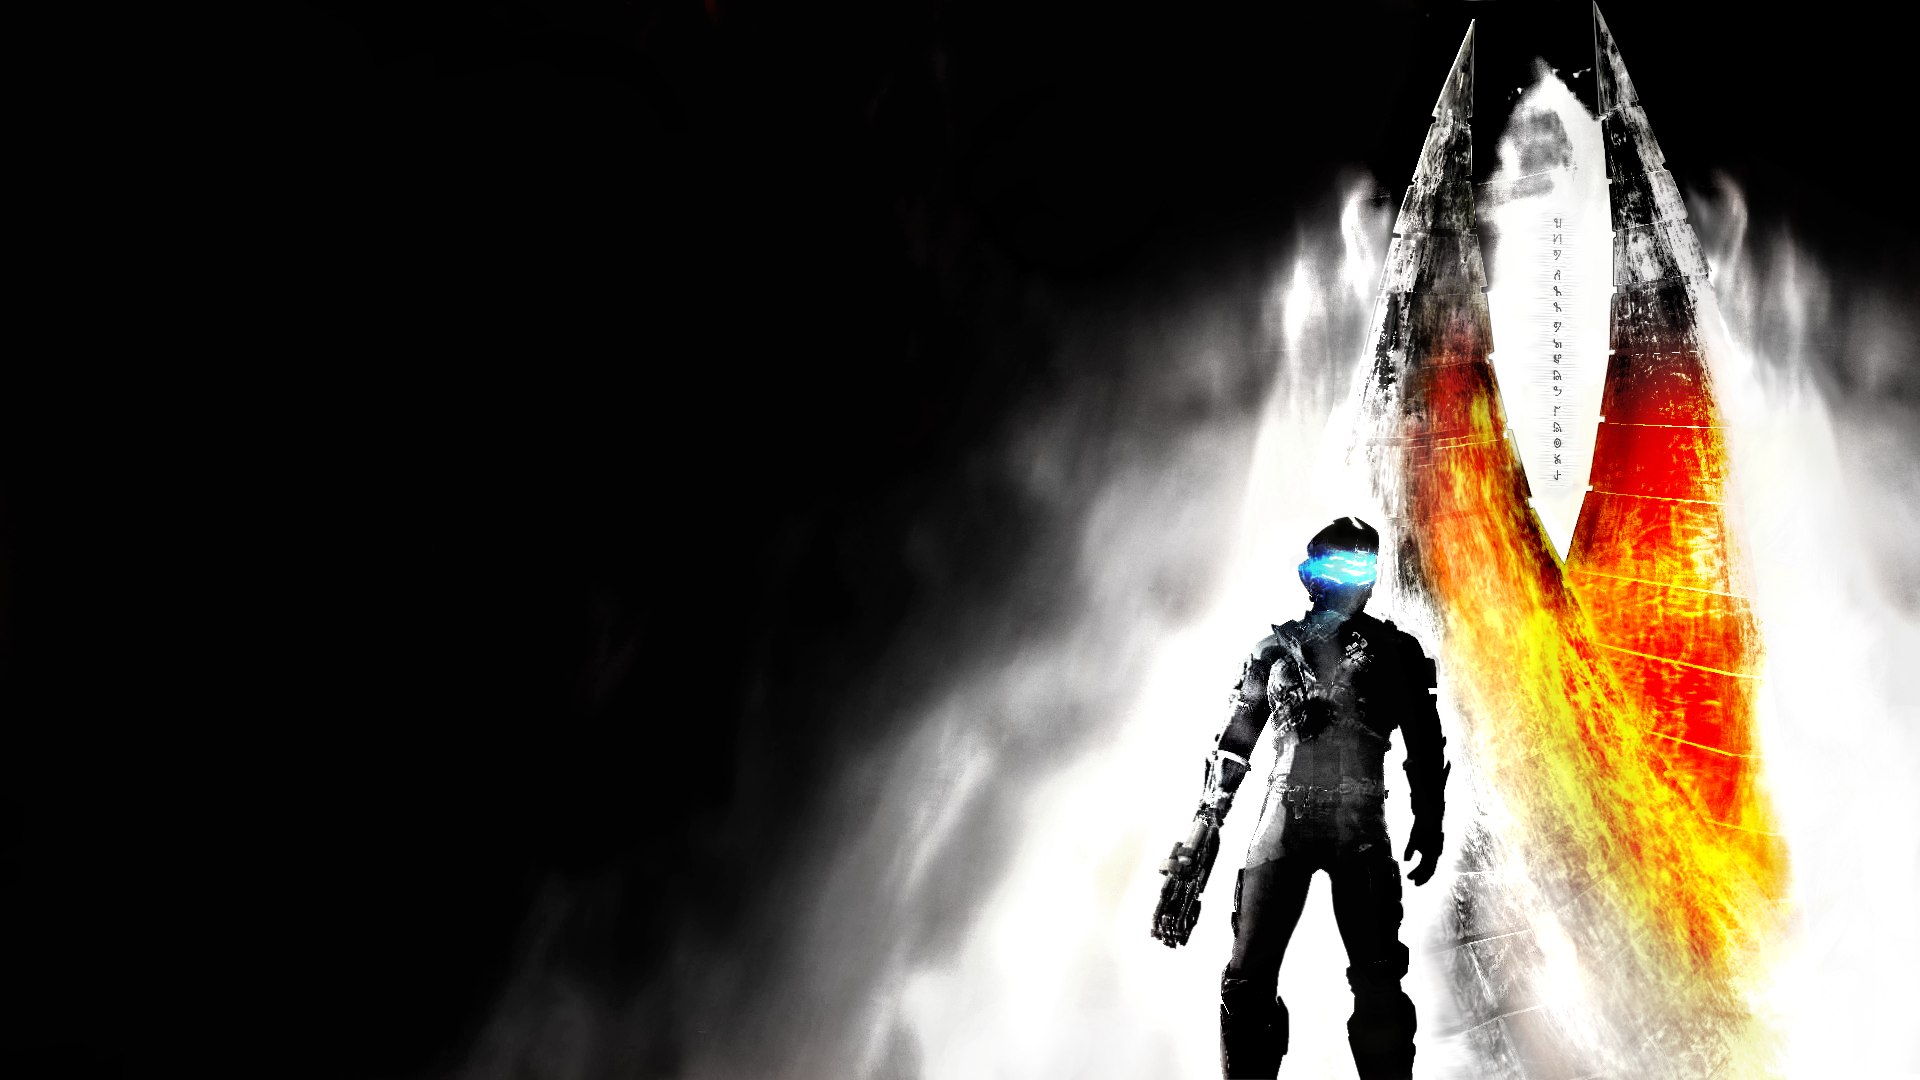 Wallpaper 1920x1080.png - The Dead Space Wiki - Dead Space, Dead Space ...